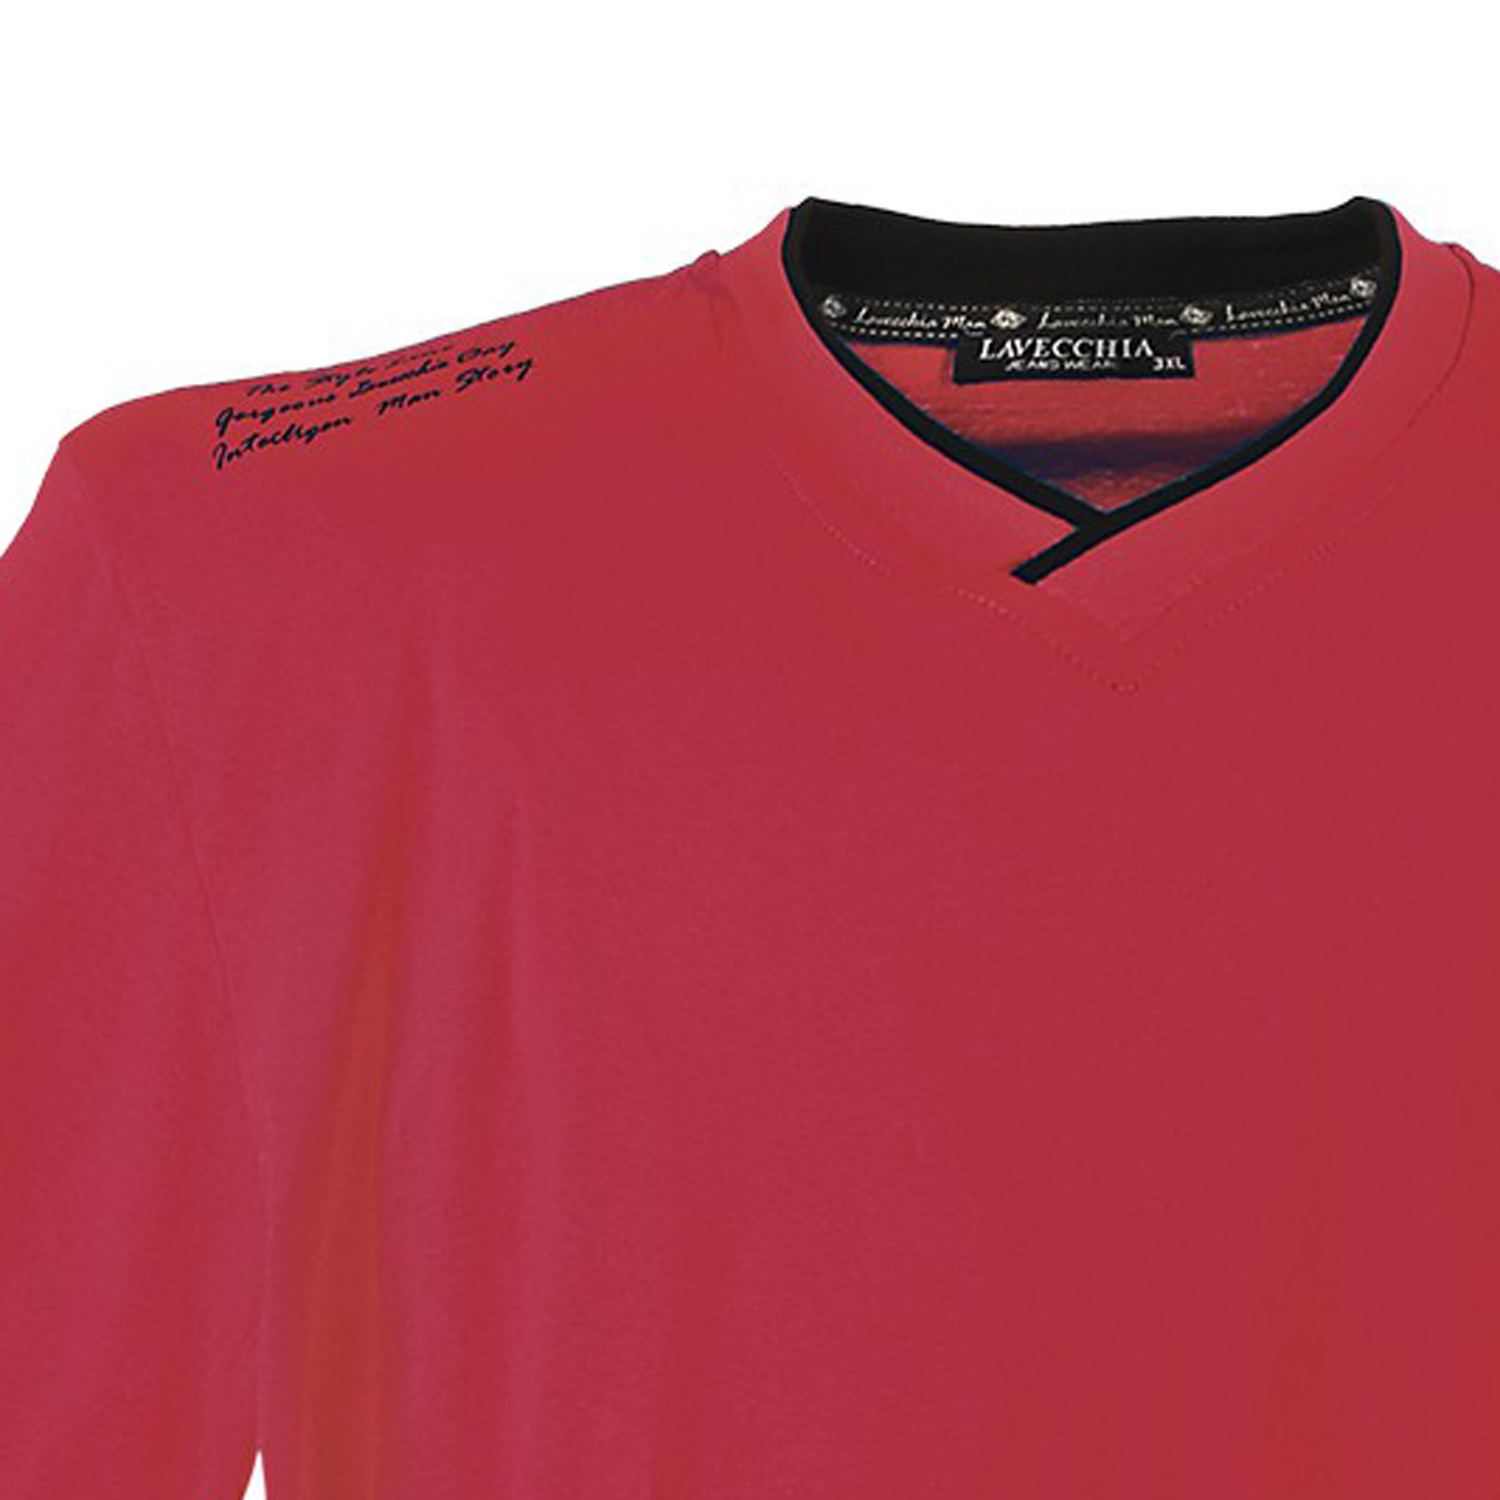 Detail Image to Red t-shirt by Lavecchia in plus sizes until 7XL